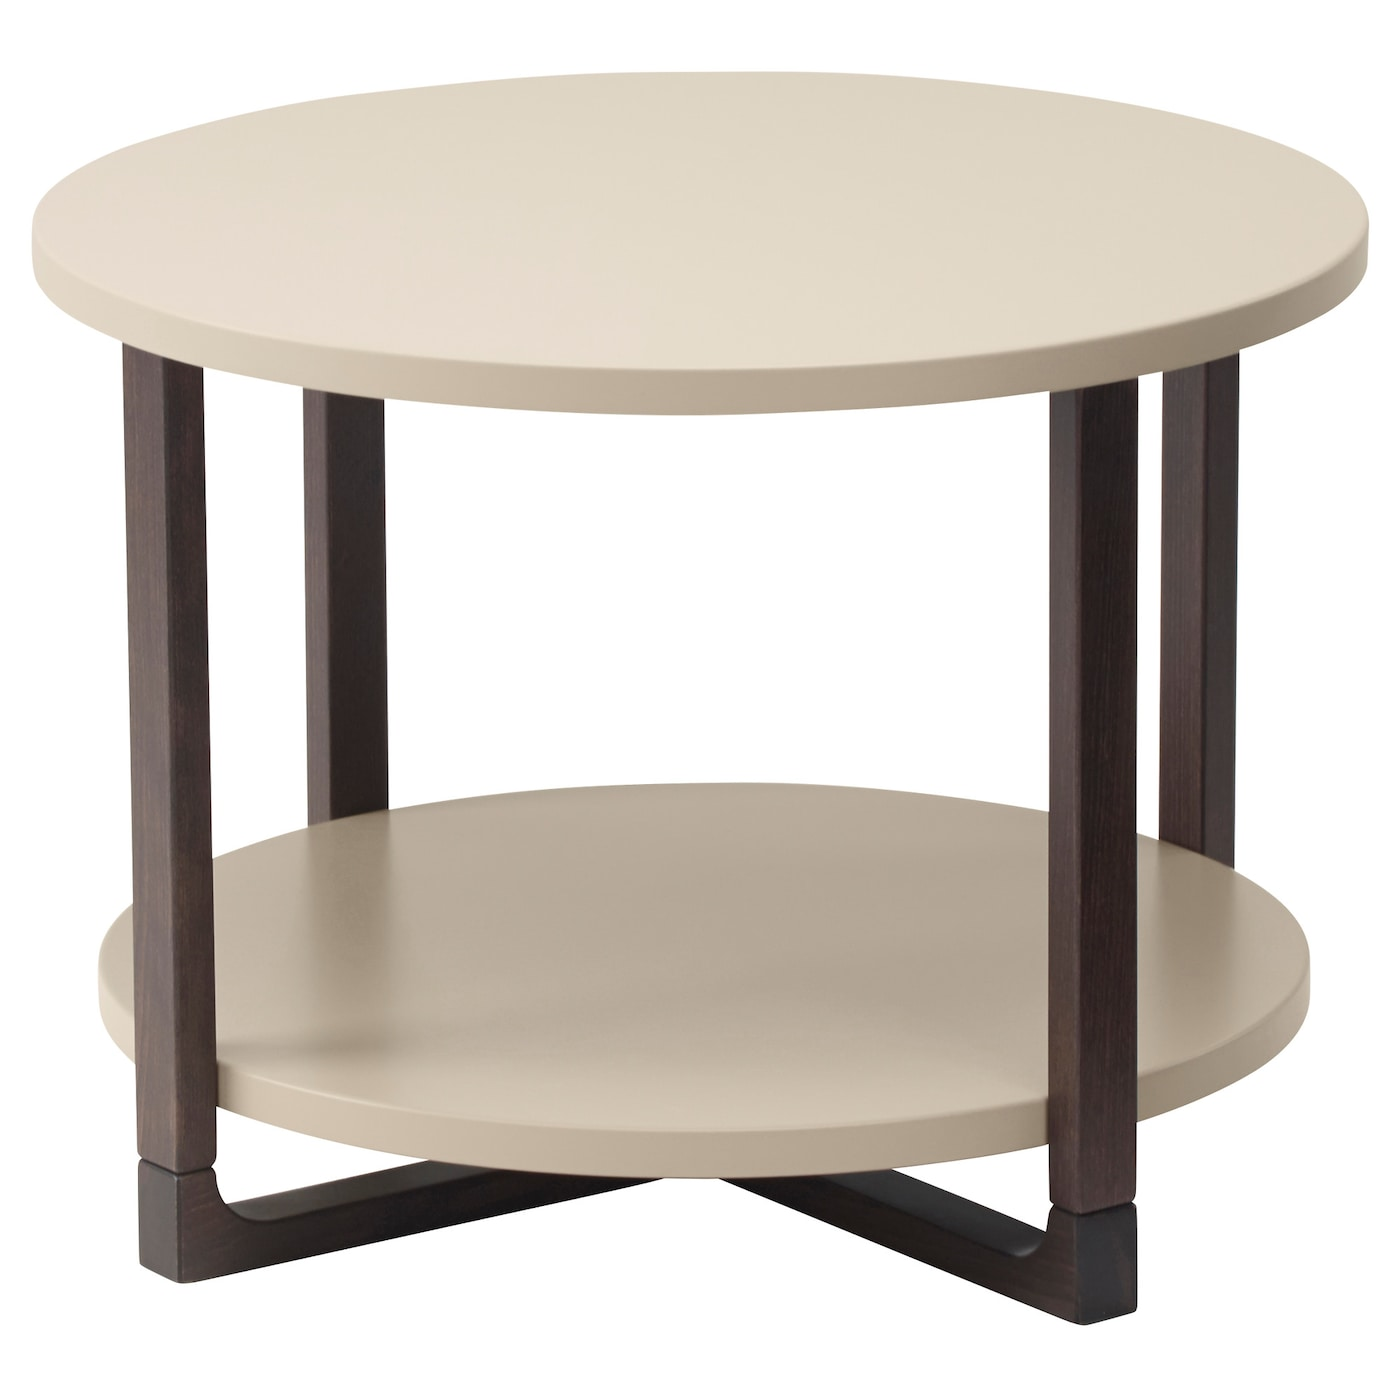 Table d 39 appoint table d 39 appoint pliante ikea for Grande table pliante ikea